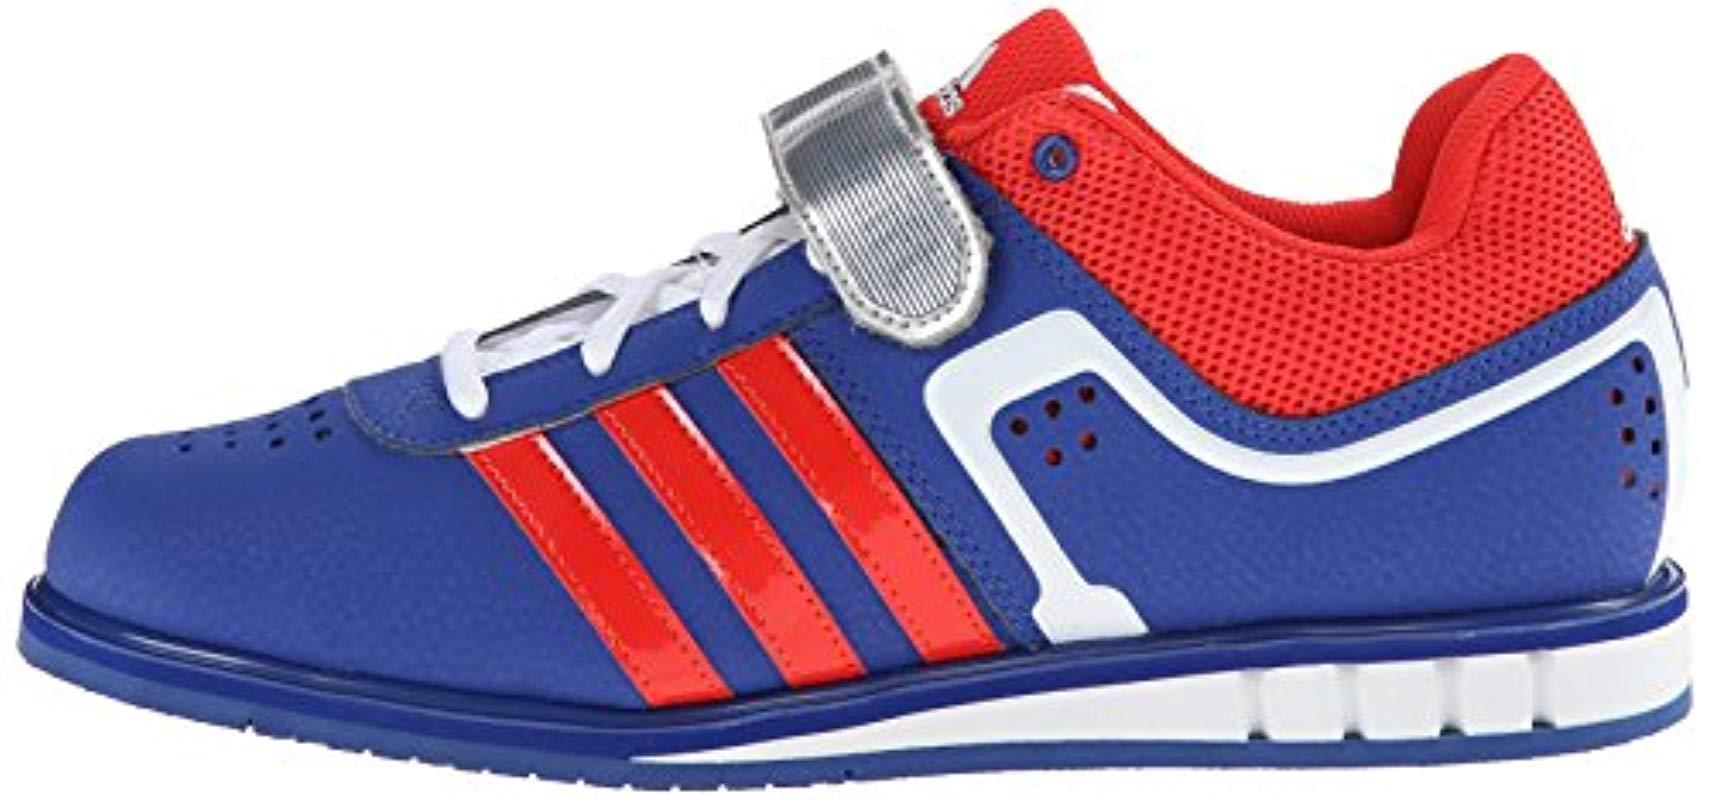 adidas Synthetic Performance Powerlift.2 Trainer Shoe in Blue for Men